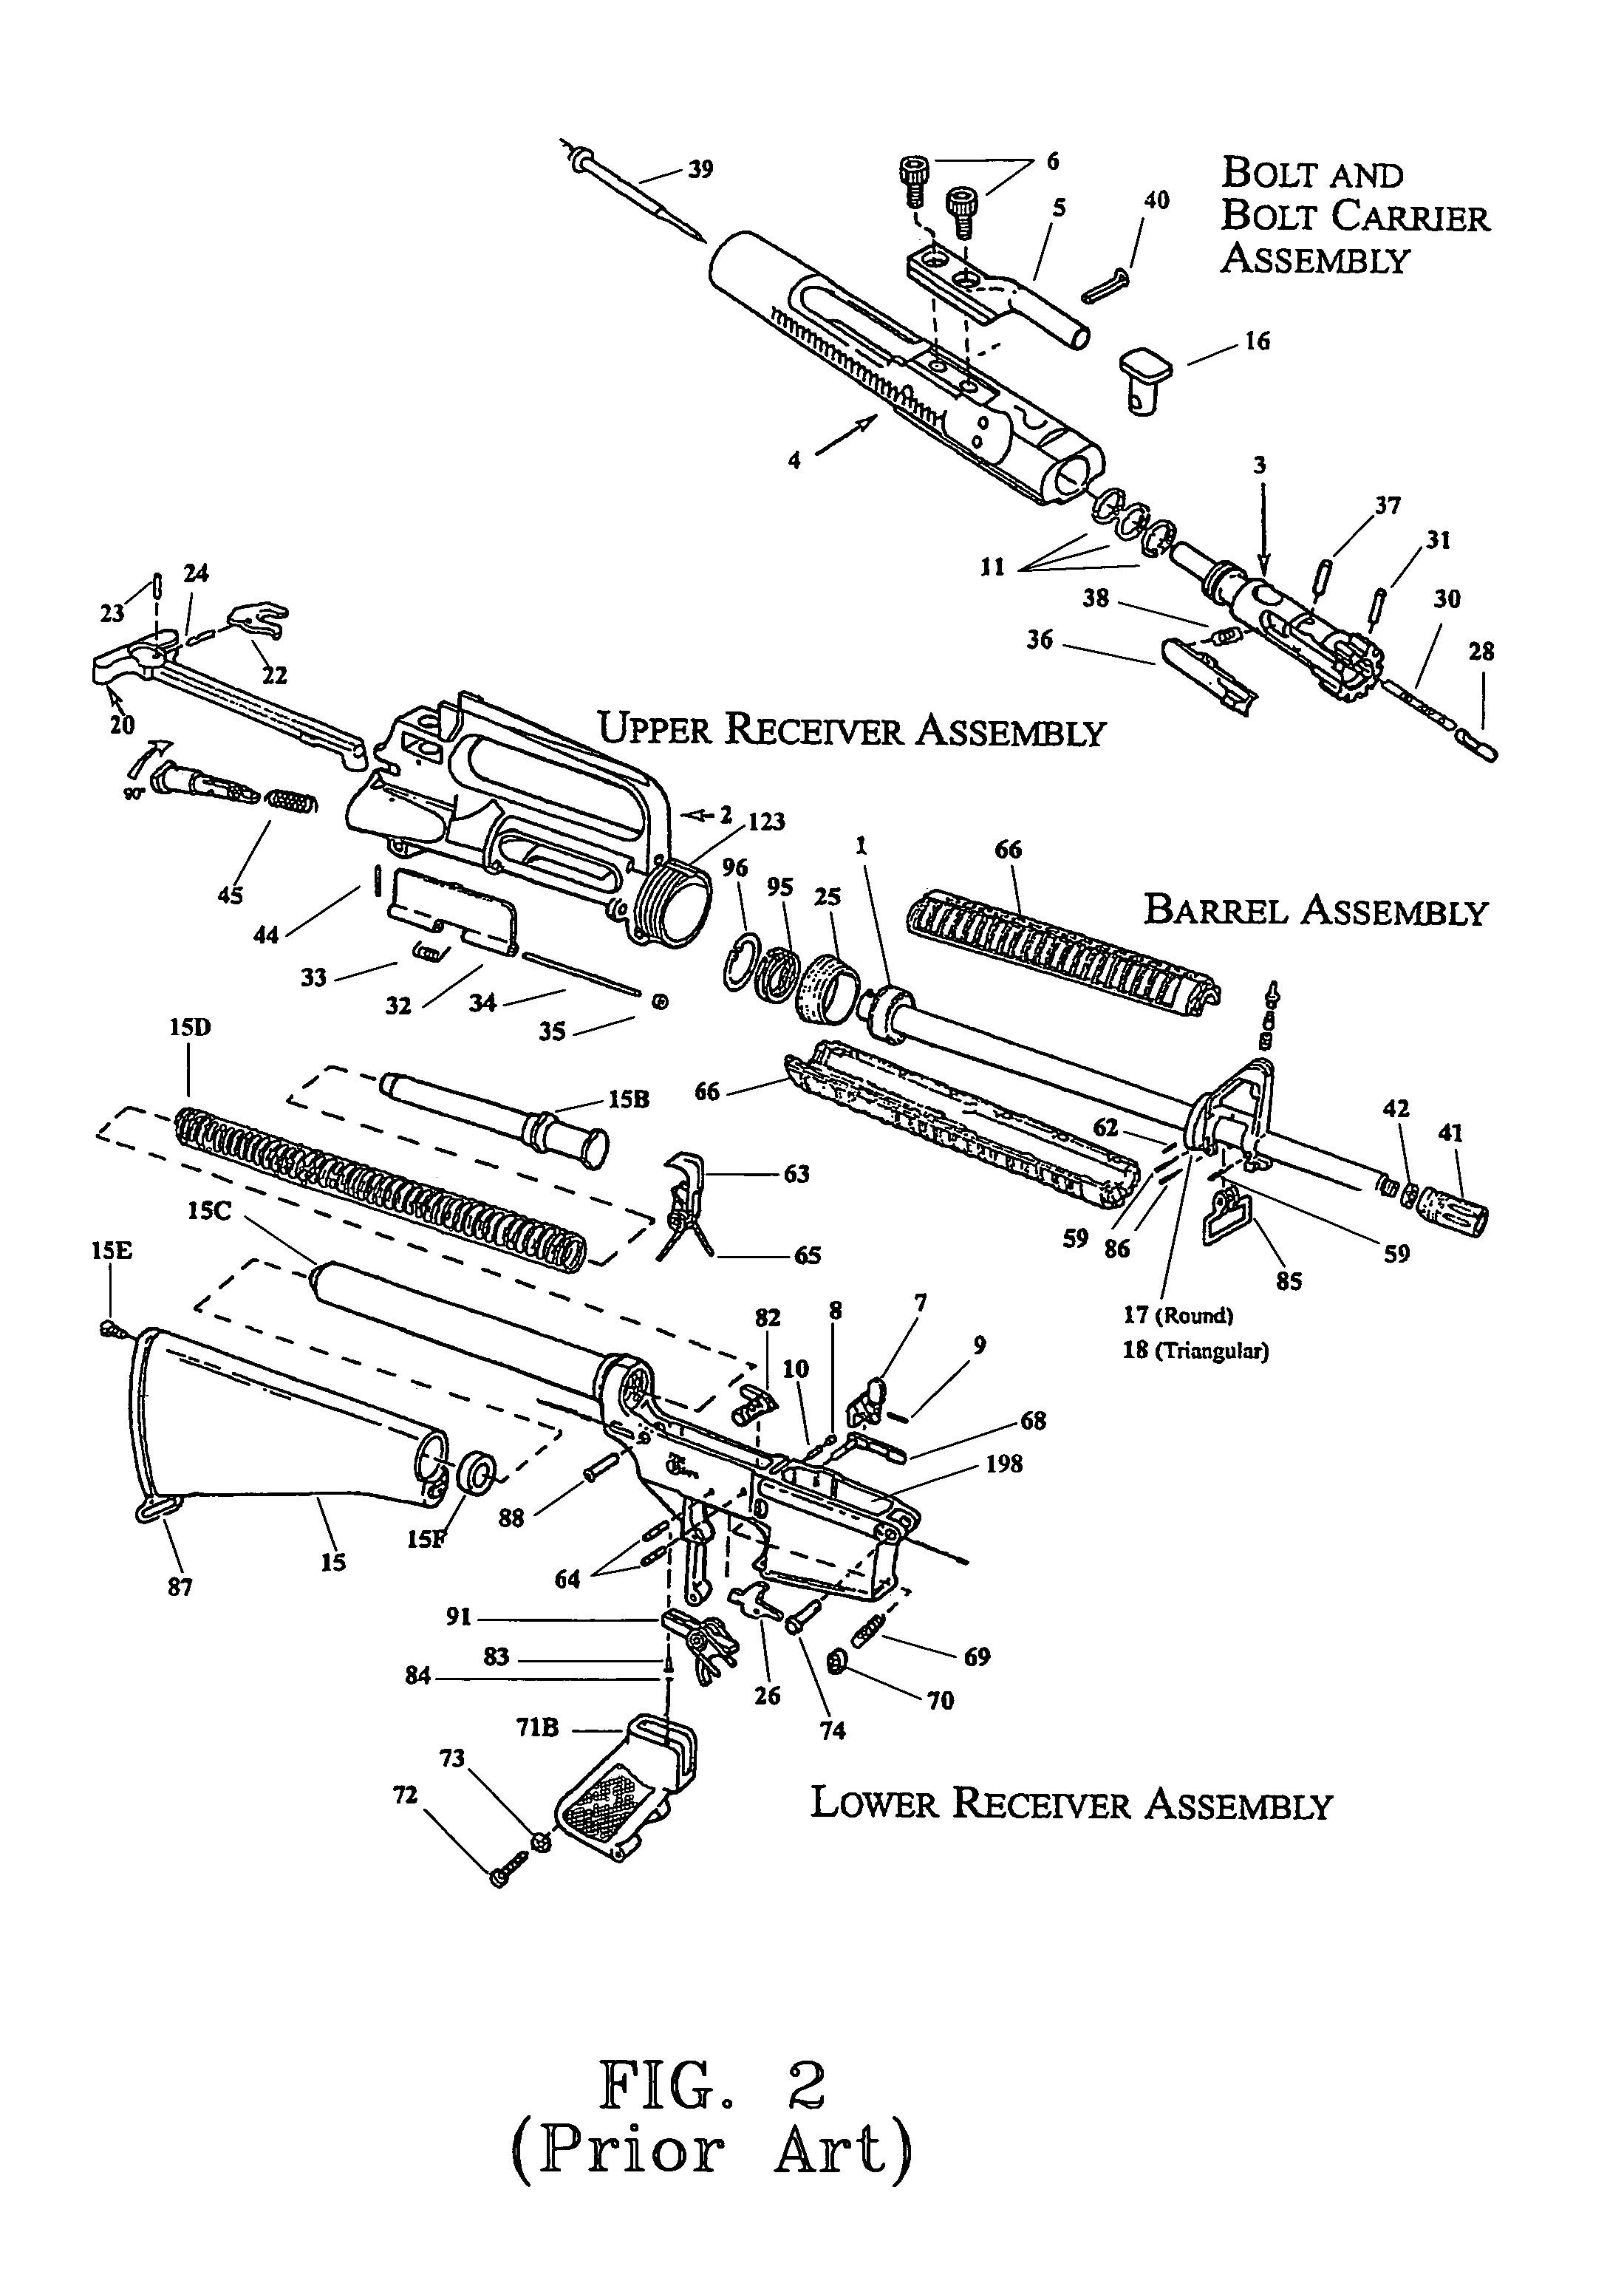 ar 15 upper receiver exploded view diagram guns m4 carbine gunsar 15 upper receiver exploded [ 2198 x 3090 Pixel ]